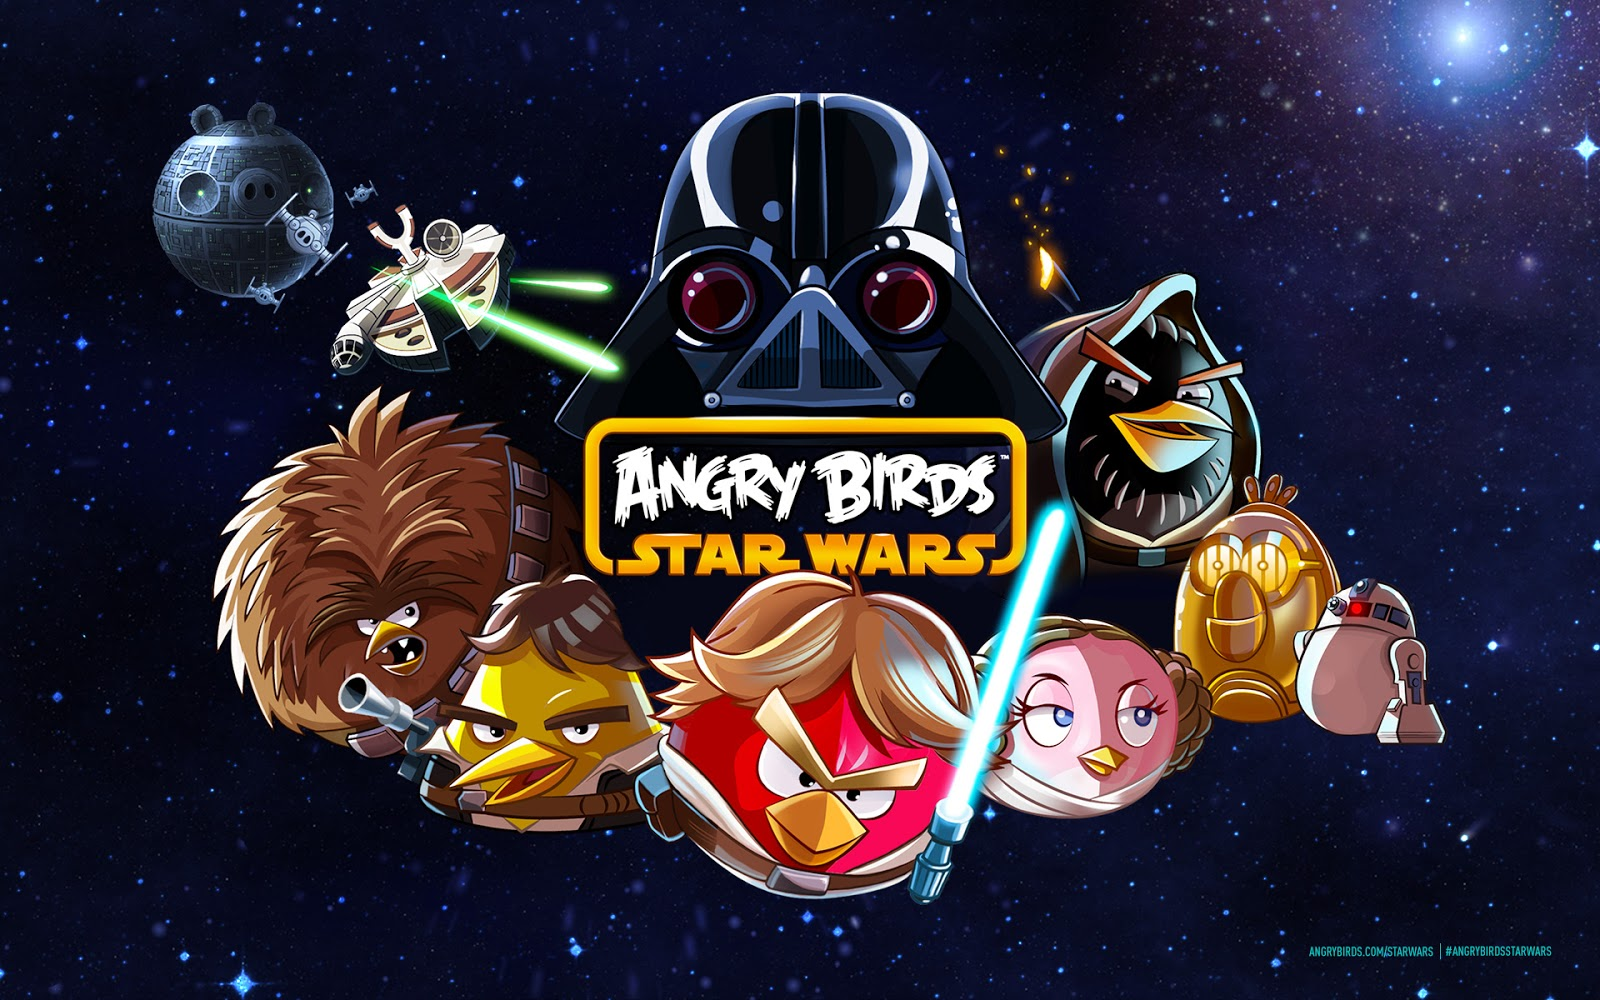 Angry-Birds-Star-Wars-Wallpaper-angry-birds-32422194-1920-1200.jpg